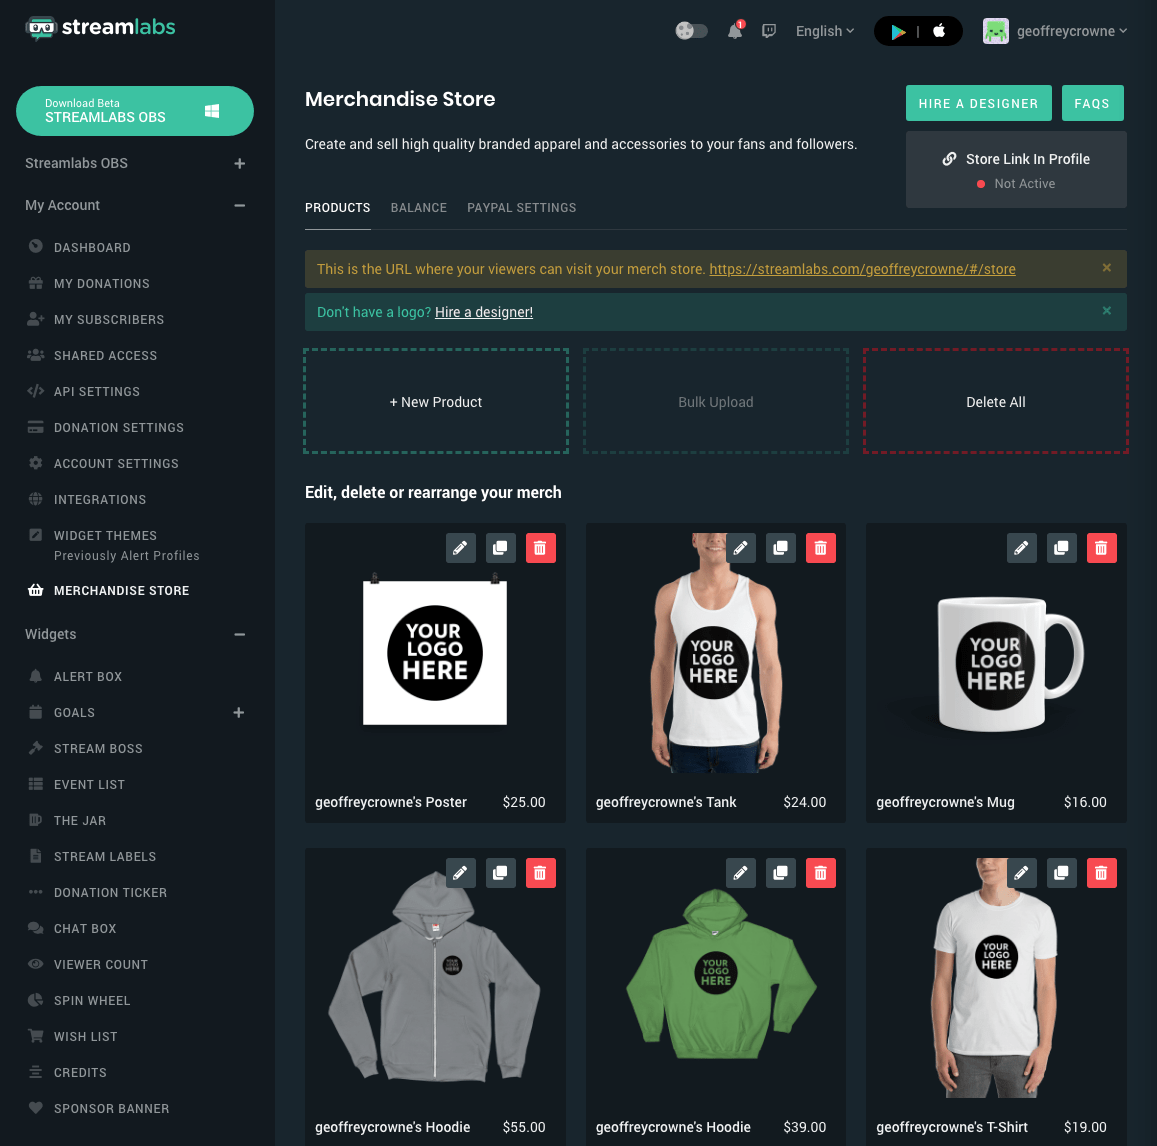 Streamlabs Merch Store